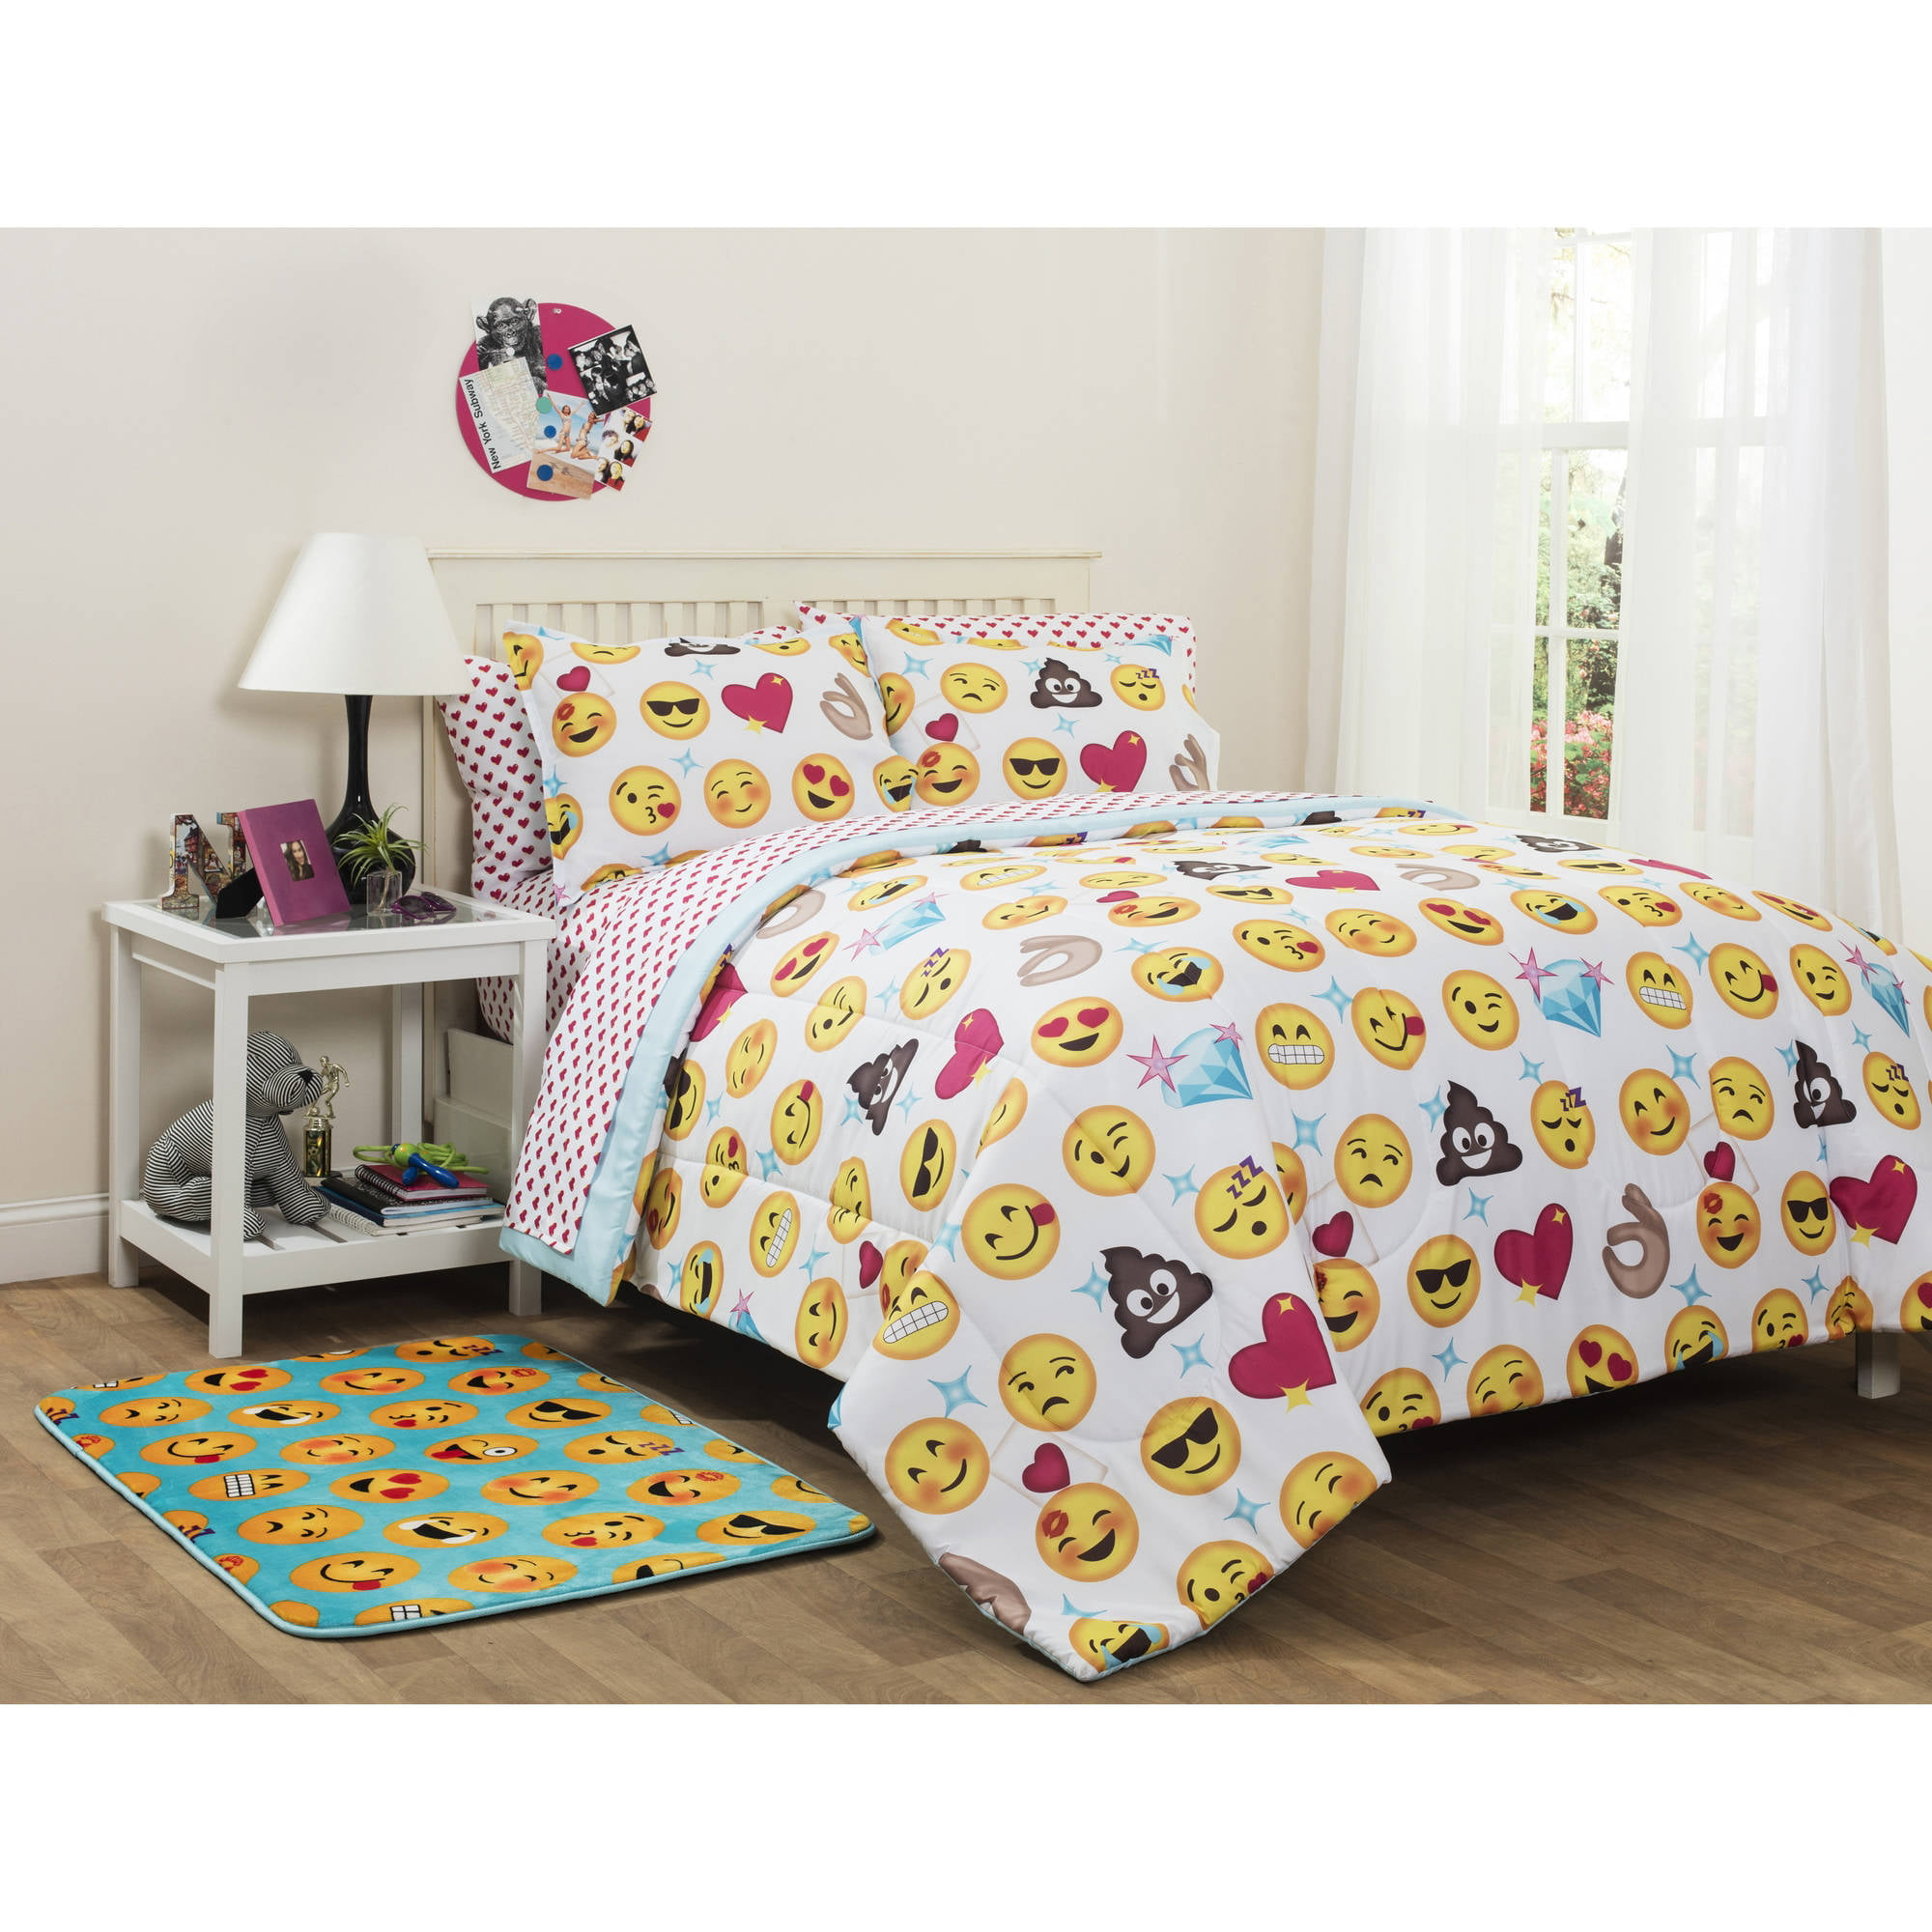 EmojiPals Bed in a Bag Bedding Set Online Only Walmartcom